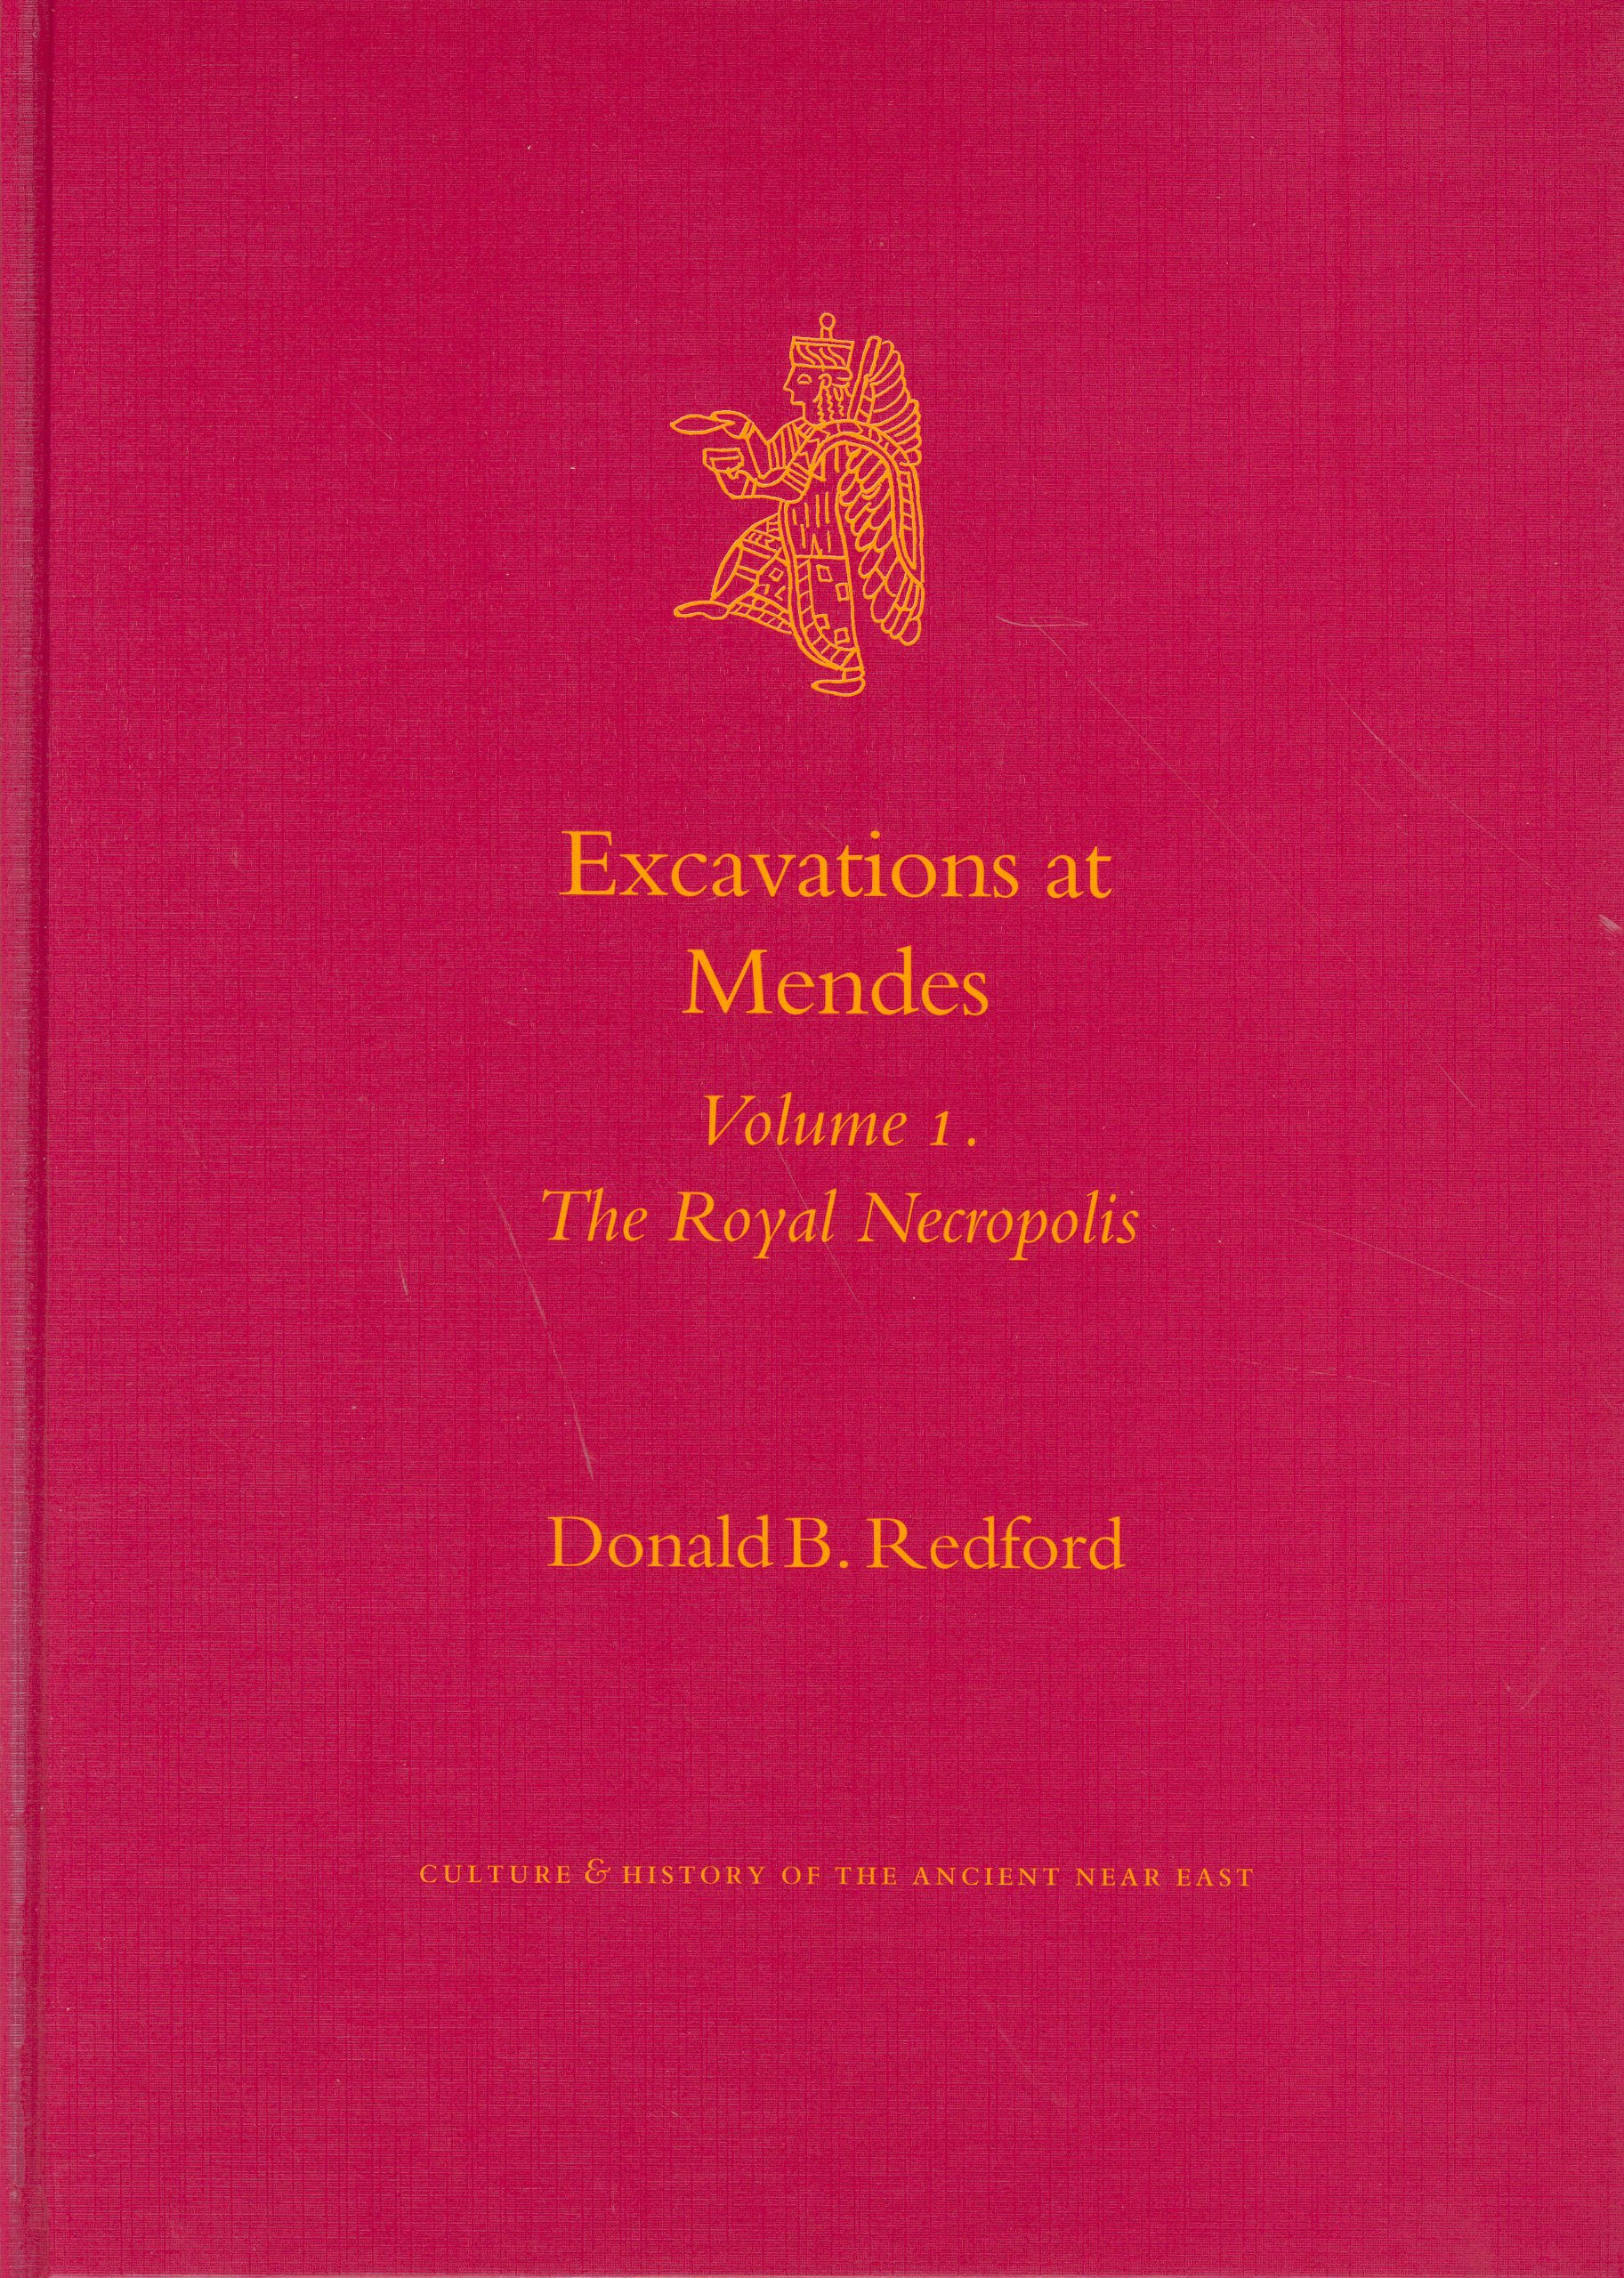 Excavations at Mendes: Volume 1. the Royal Necropolis (Culture and History of the Ancient Near East) PDF